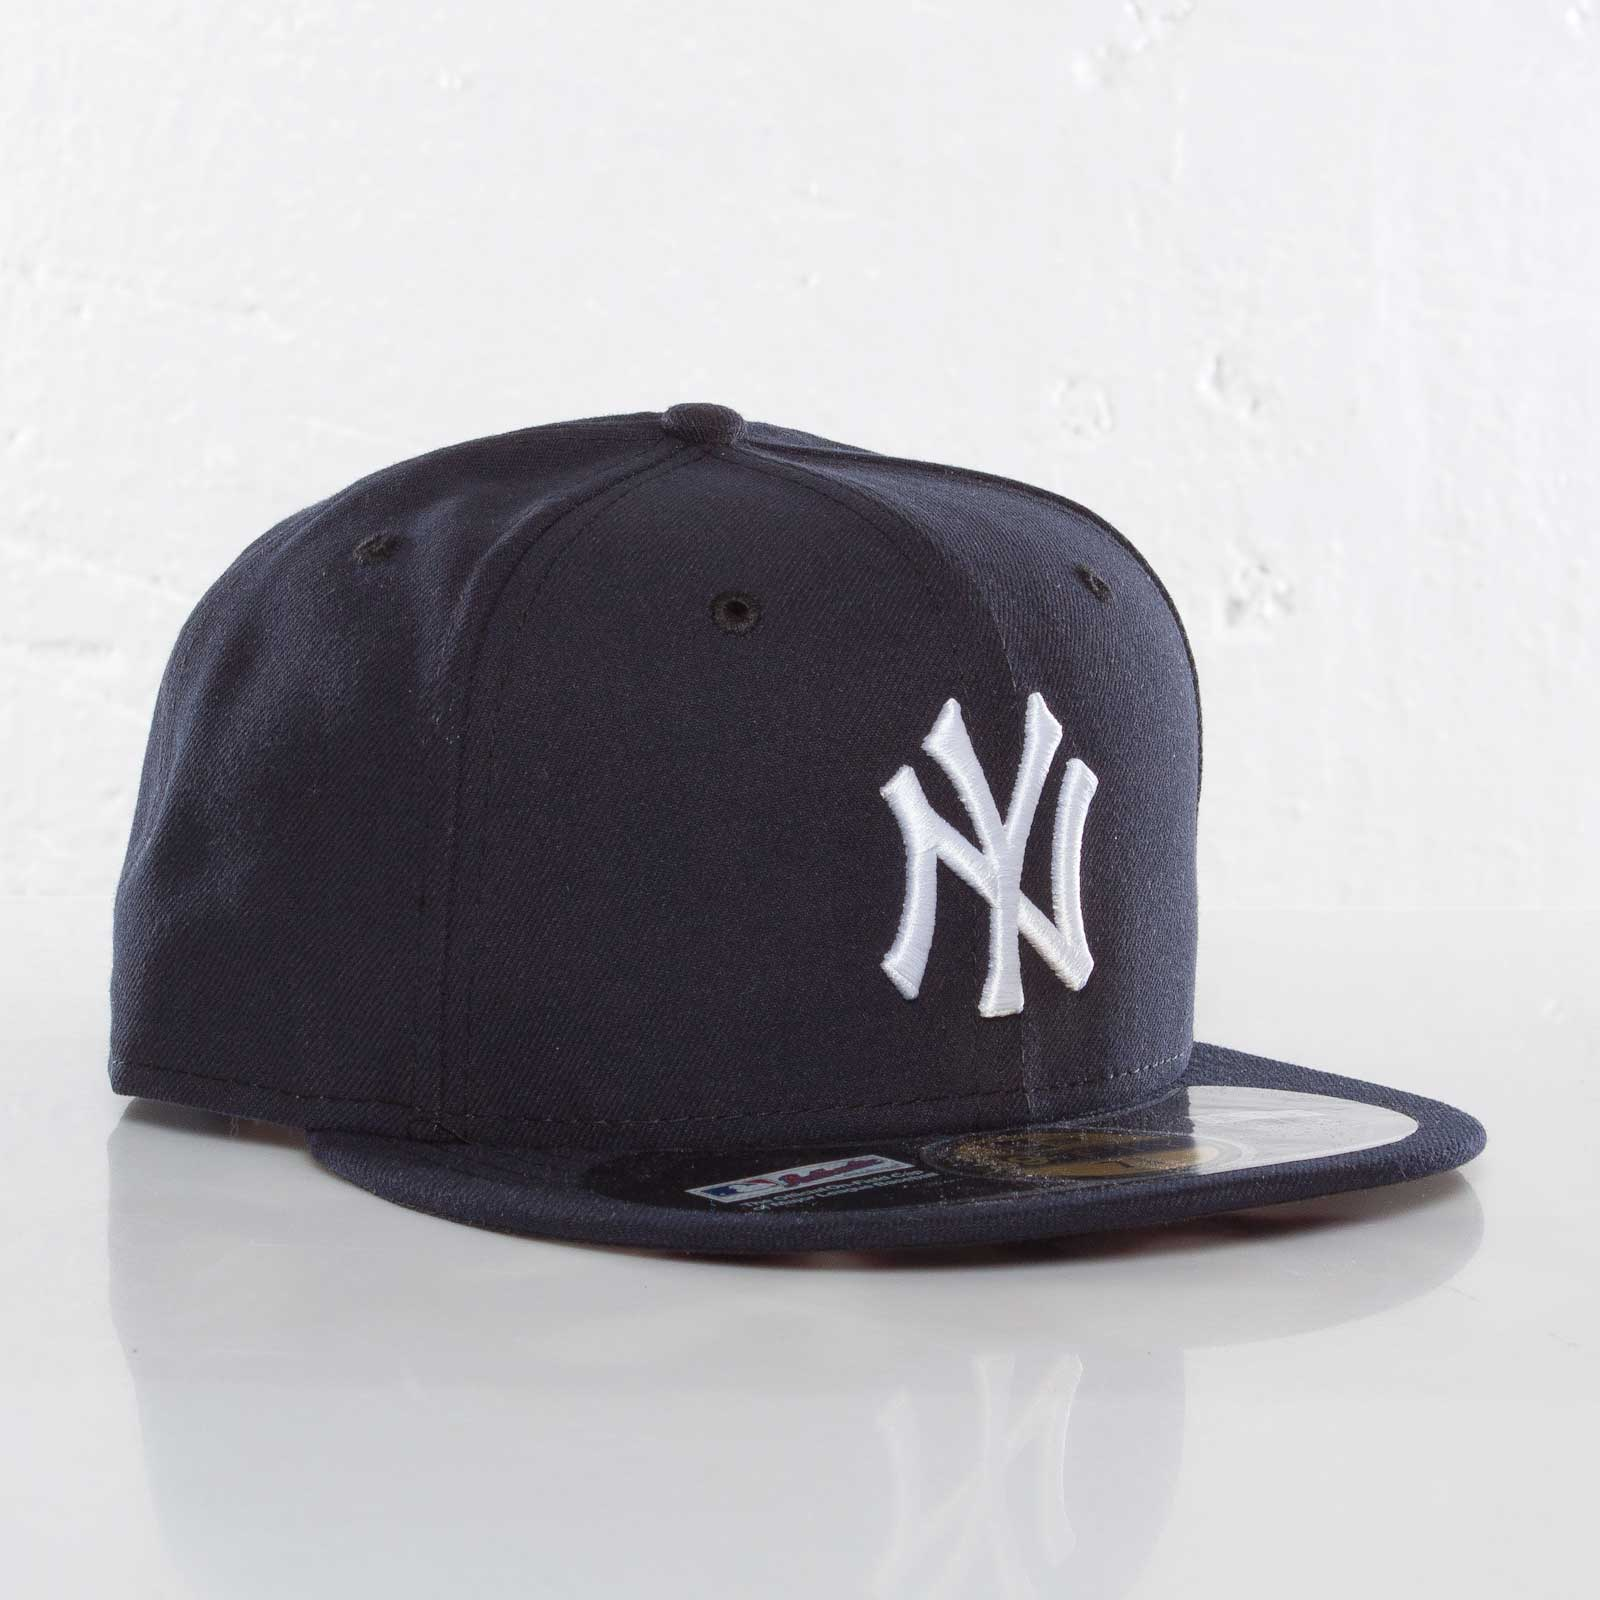 d299222656174 New Era Authentic NY Yankees Cap - 101448 - Sneakersnstuff ...